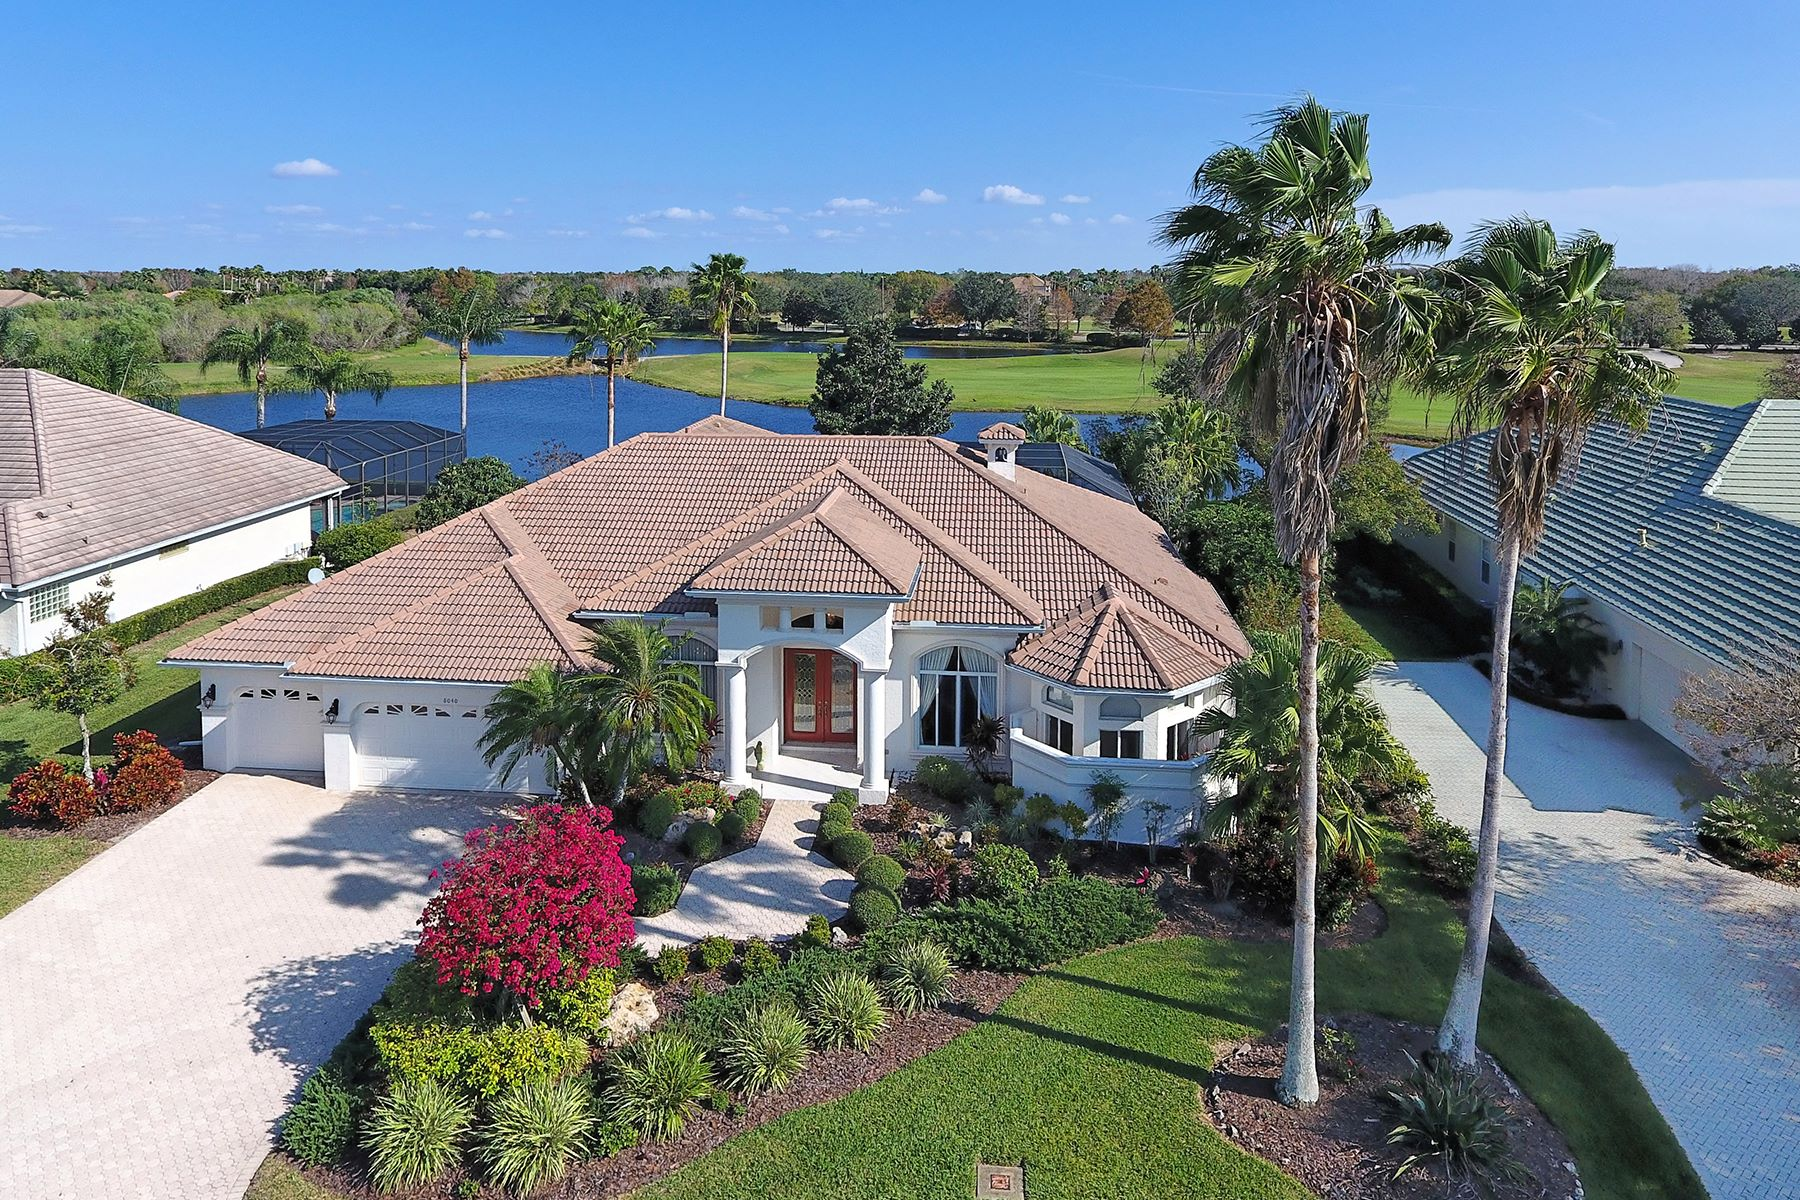 Casa Unifamiliar por un Venta en LAKEWOOD RANCH COUNTRY CLUB 8040 Royal Birkdale Cir Lakewood Ranch, Florida, 34202 Estados Unidos